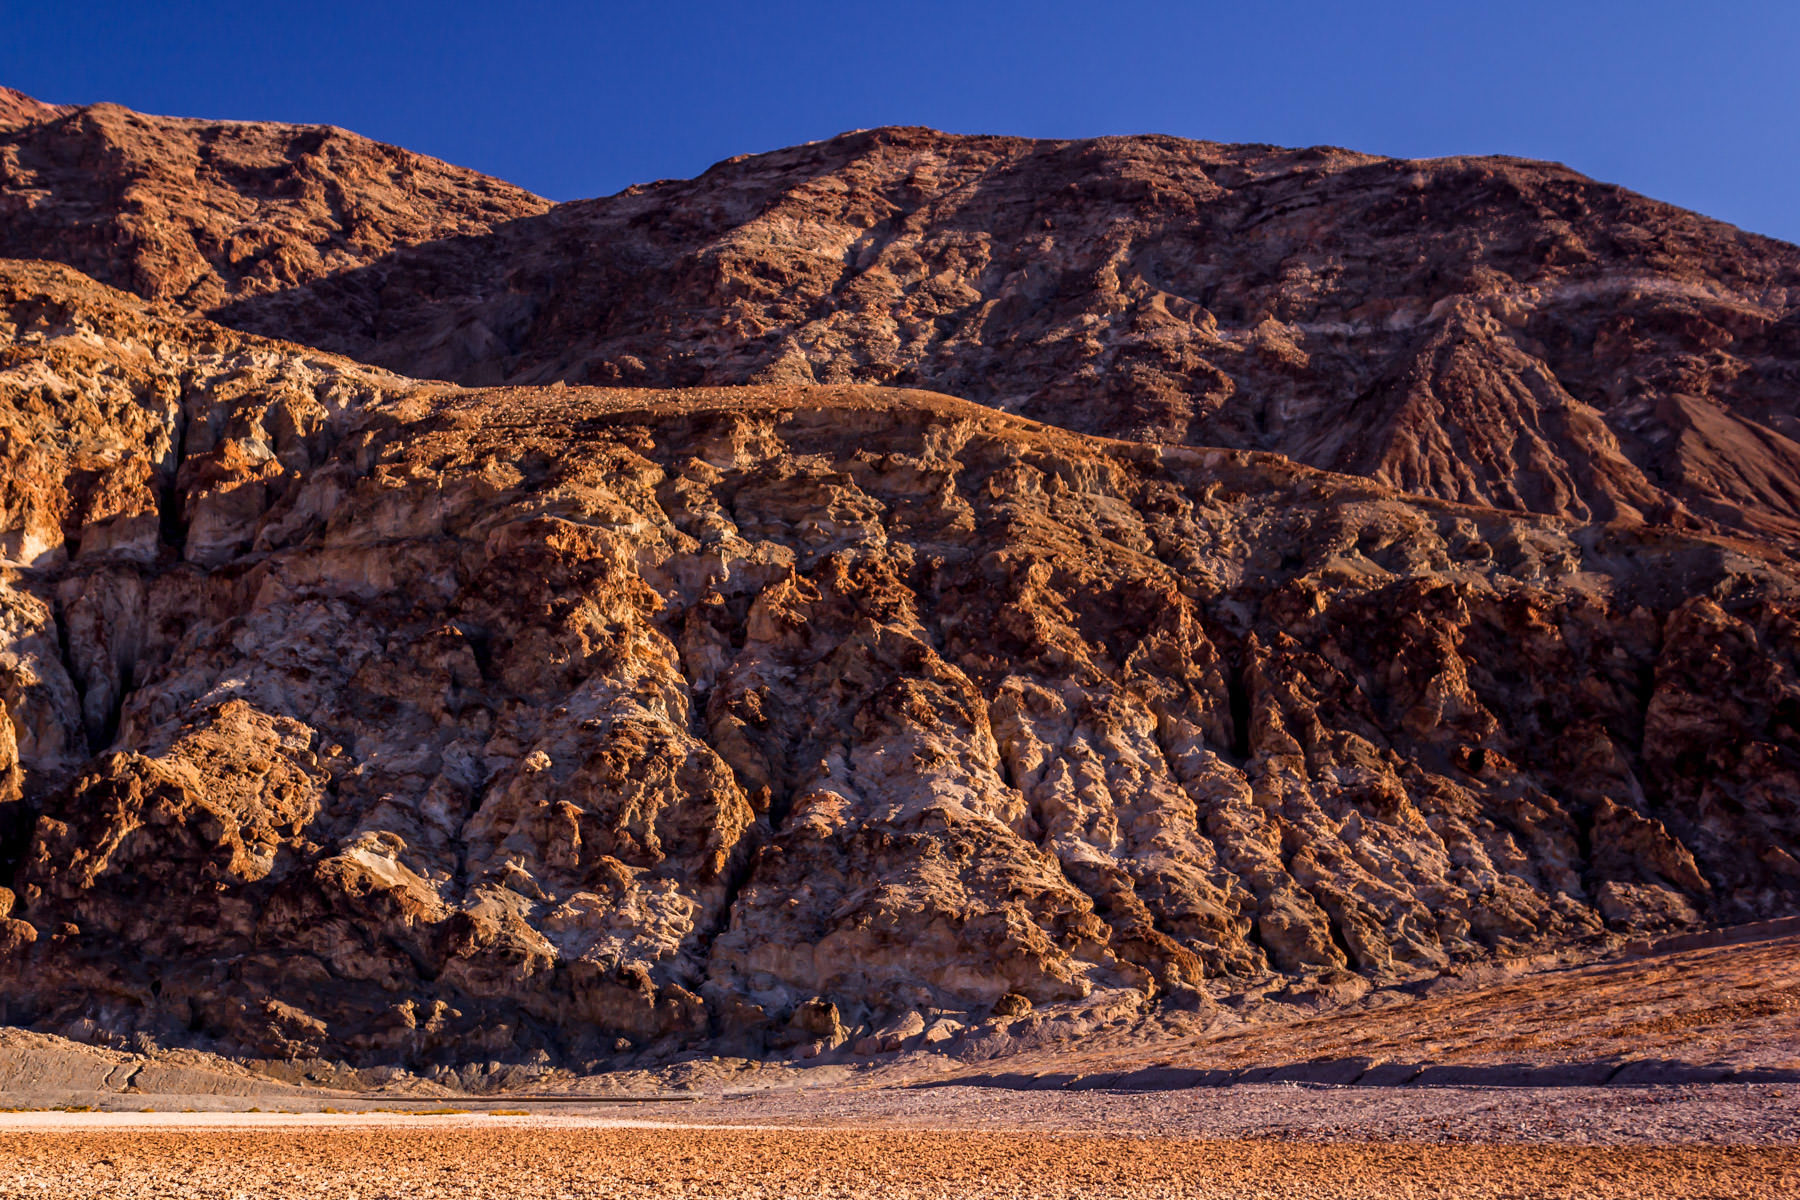 The arid landscape of California's Death Valley National Park.